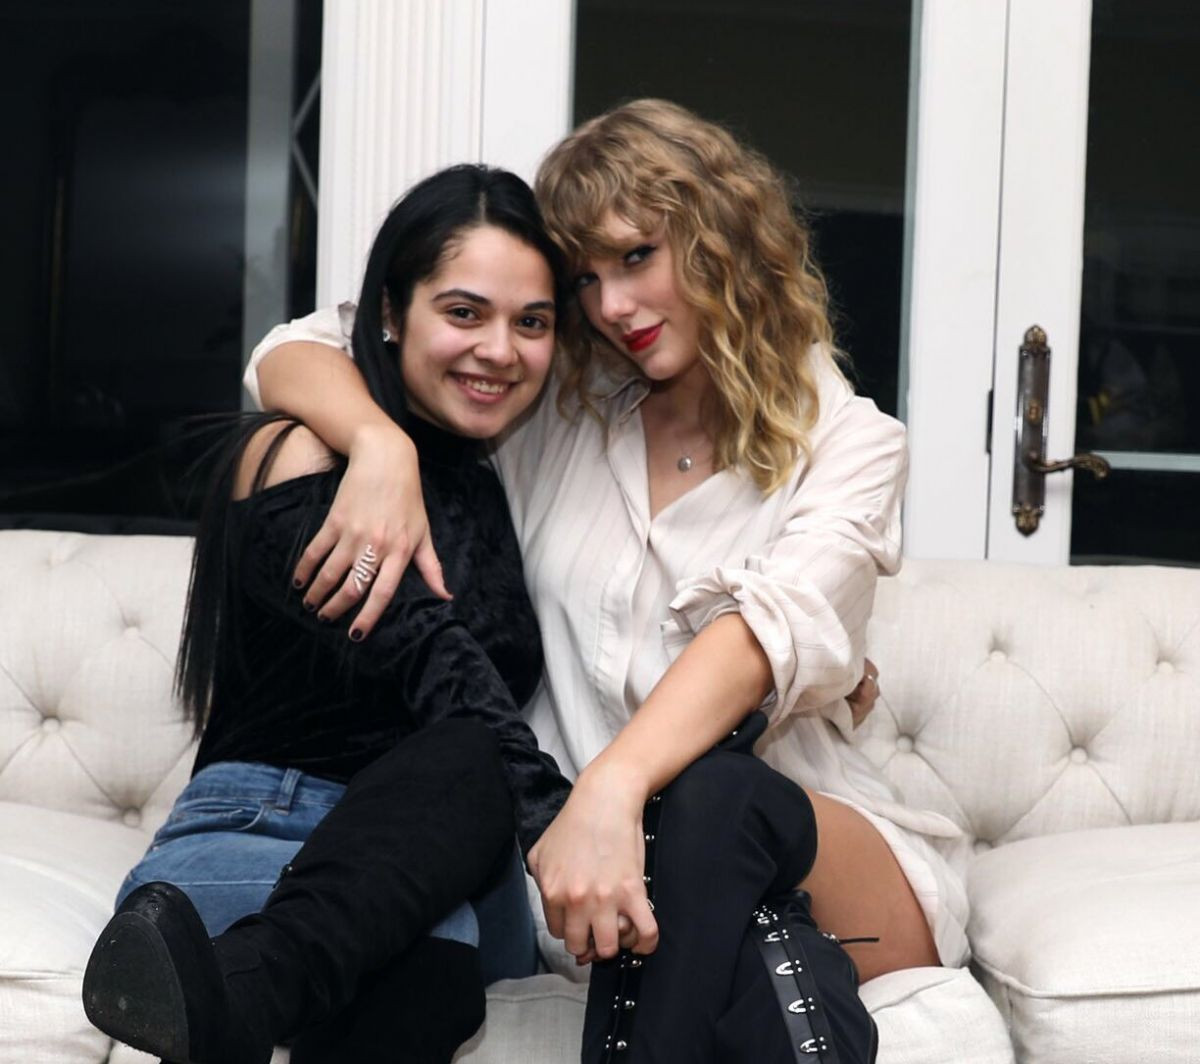 Taylor Swift At 'Reputation' Secret Sessions at her home ...